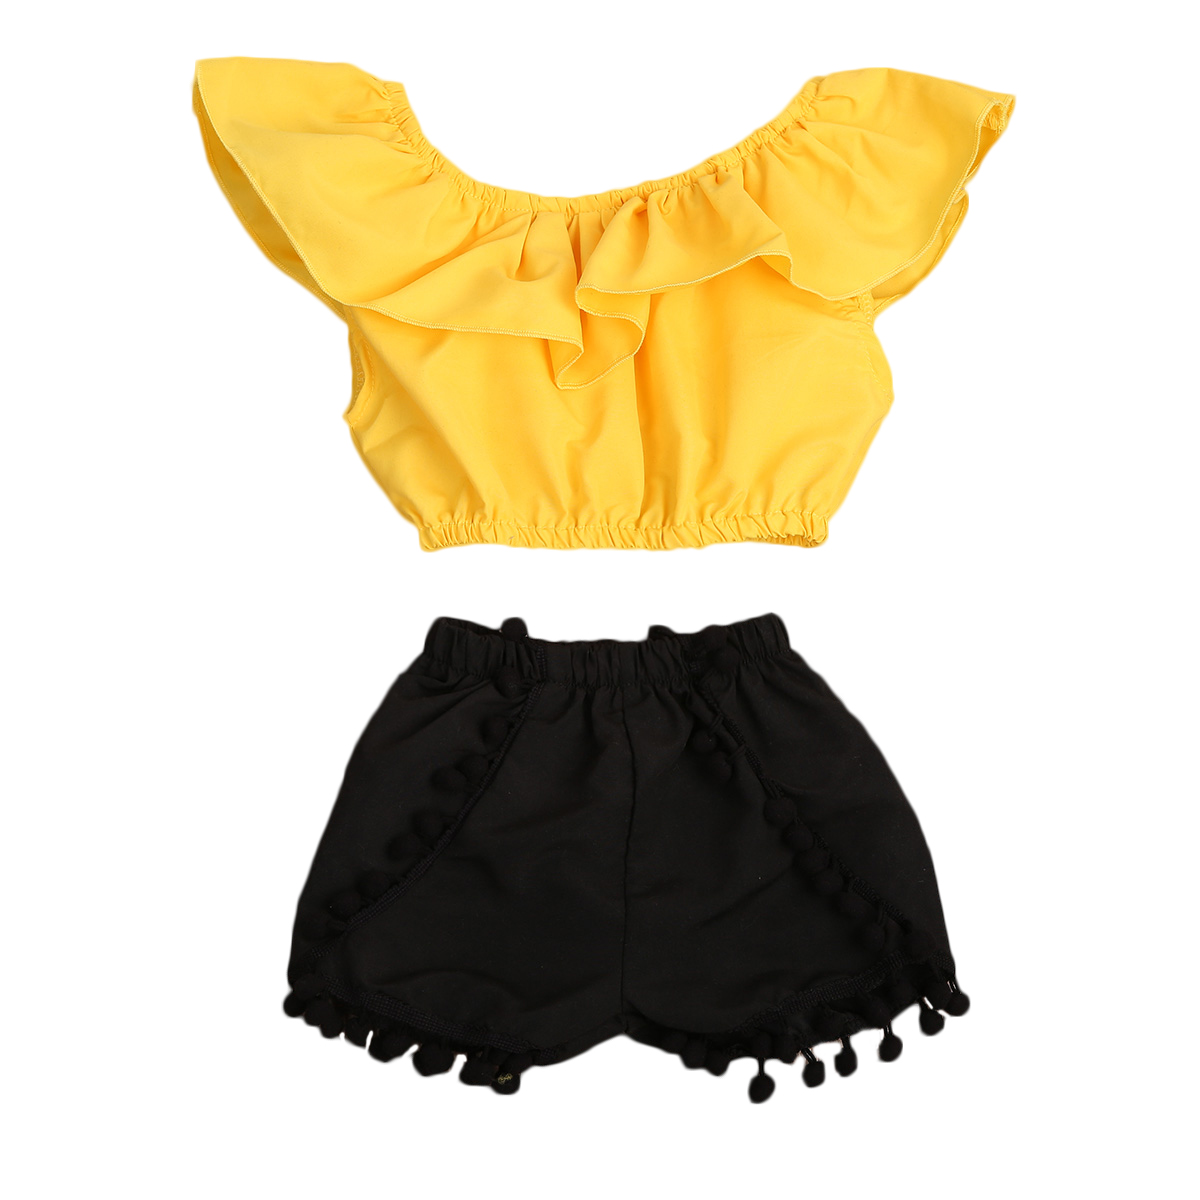 Toddler Kids Girls Outfit Crop Top T-shirt Tassel Short Pants Summer Little Girl Short Clothes Set Vetement Enfant Fille 2-8T